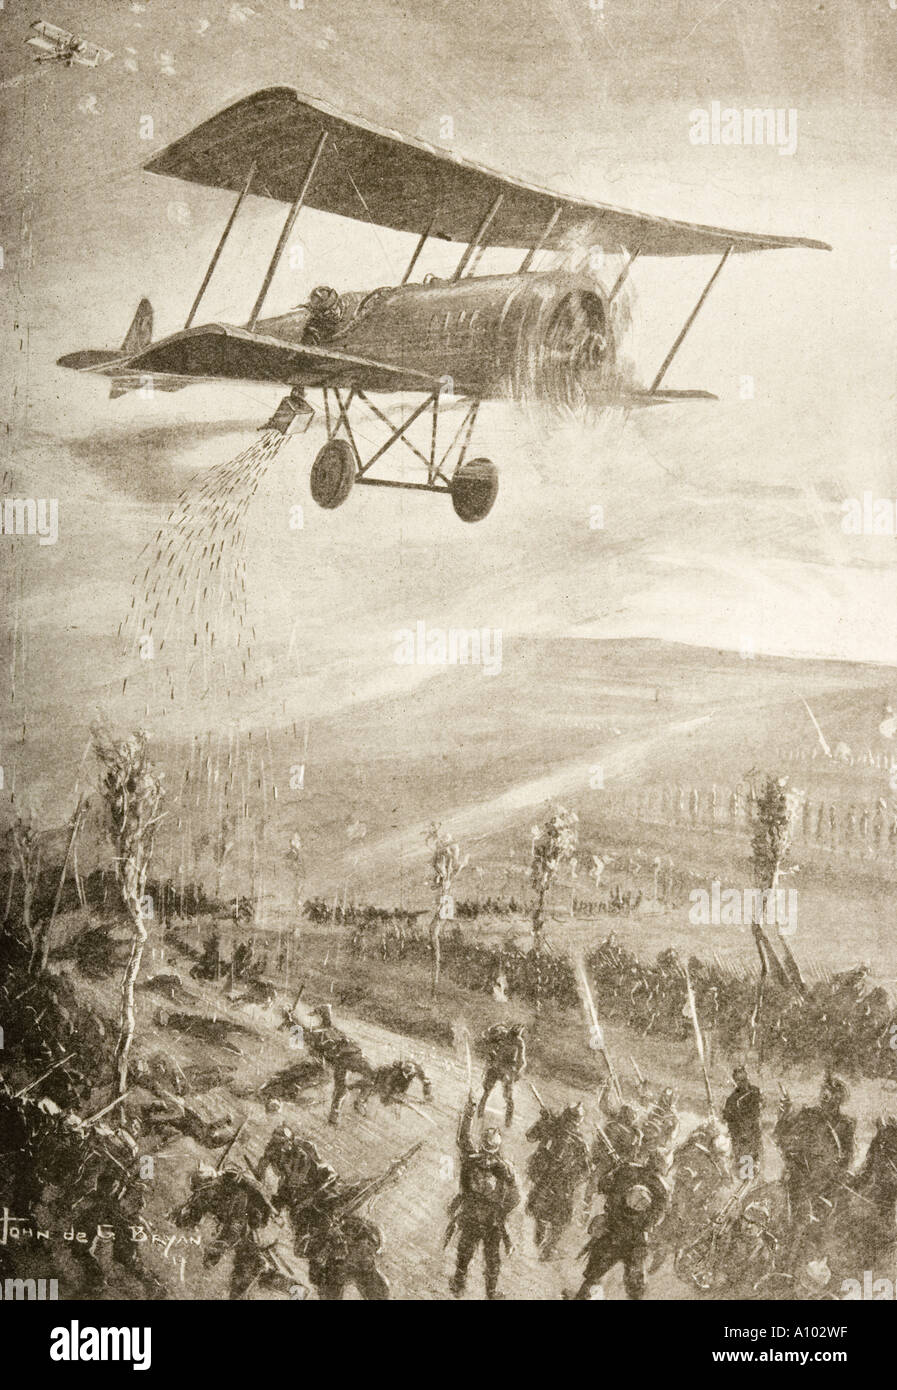 First World War terror weapon.  Biplane dropping steel arrows onto troops. - Stock Image